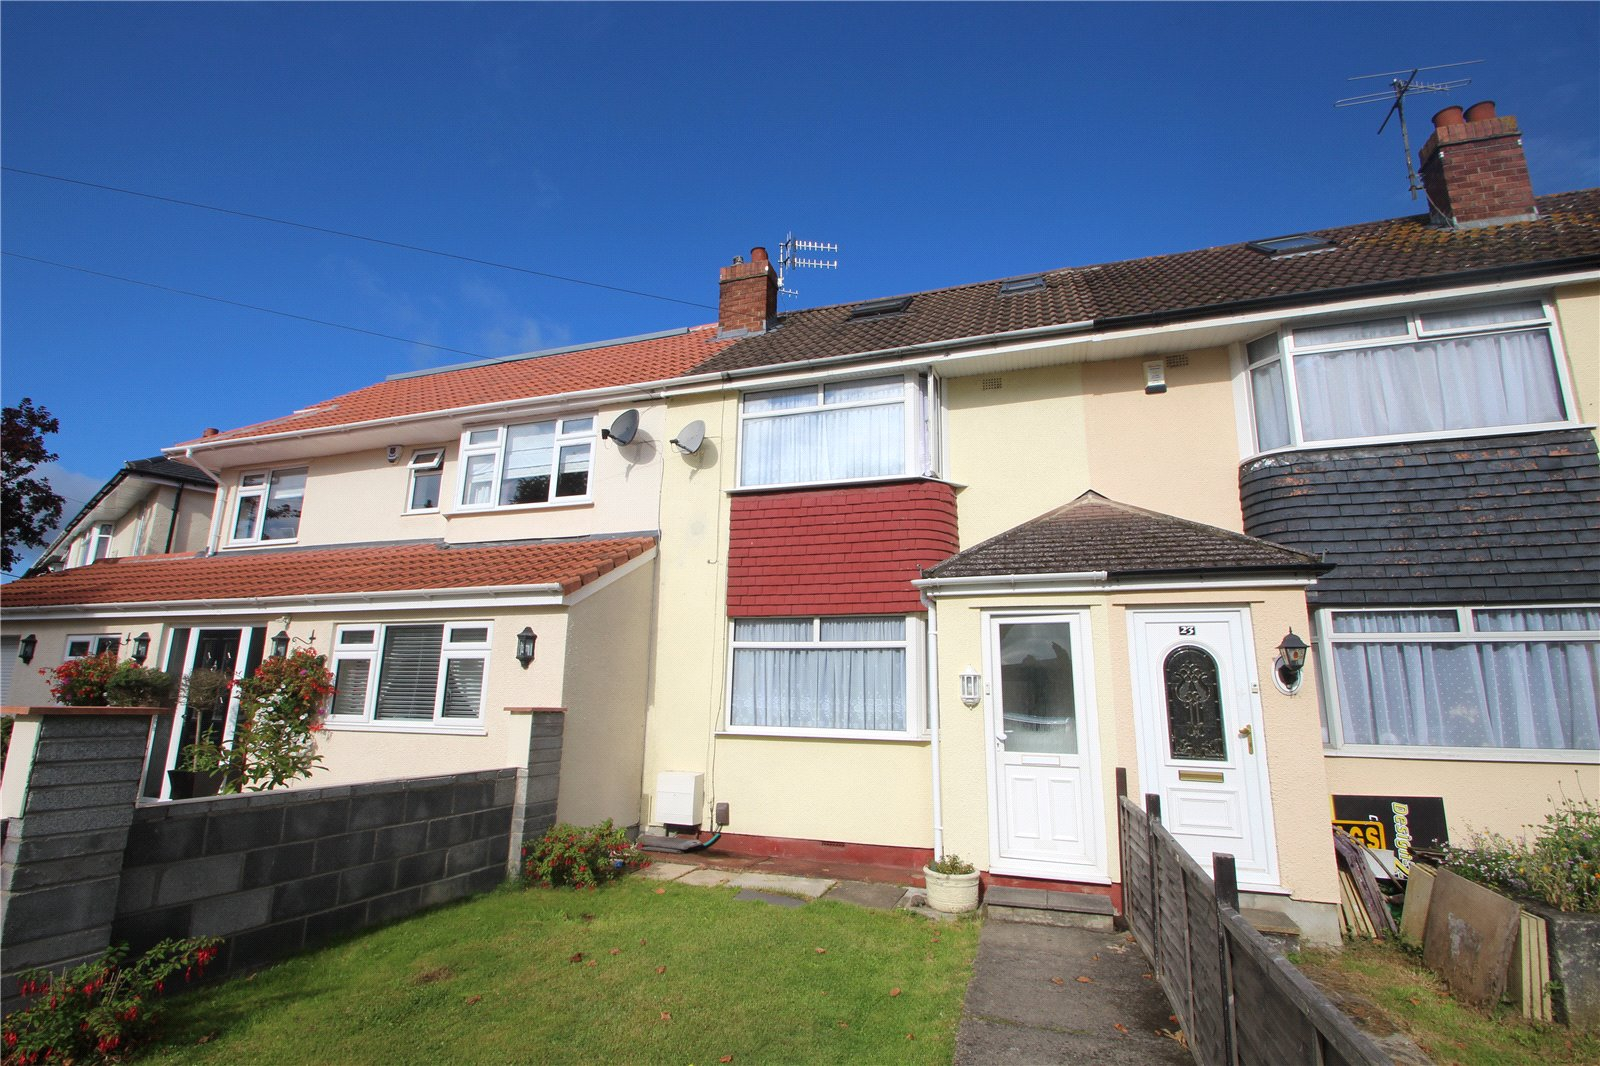 4 Bedrooms Terraced House for sale in Headley Park Avenue Headley Park BRISTOL BS13